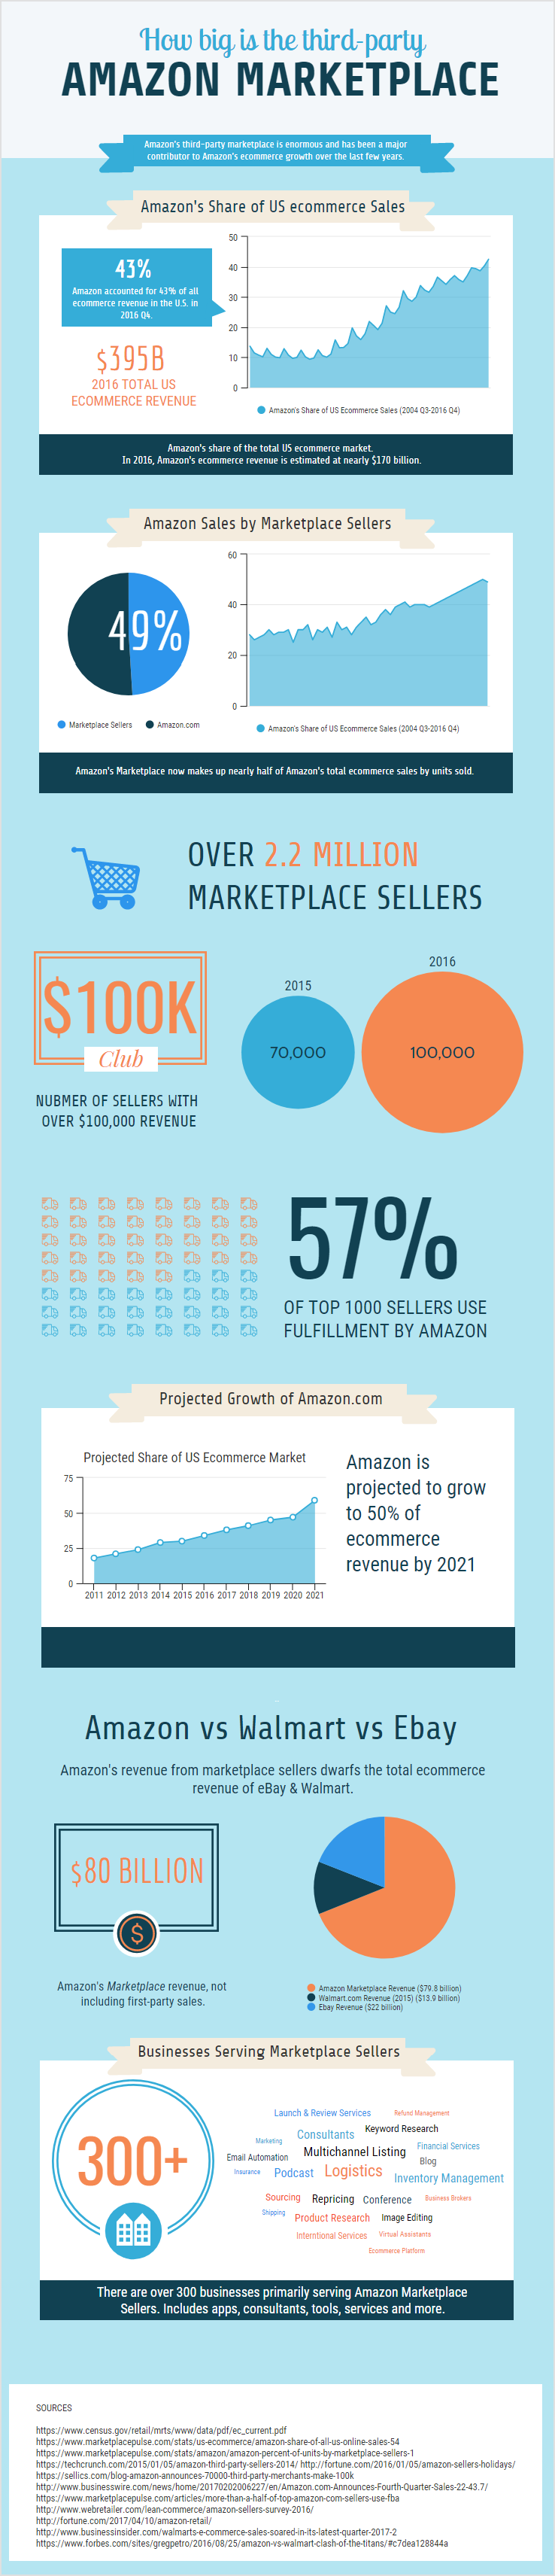 infographic - how big ia amazon third party marketplace